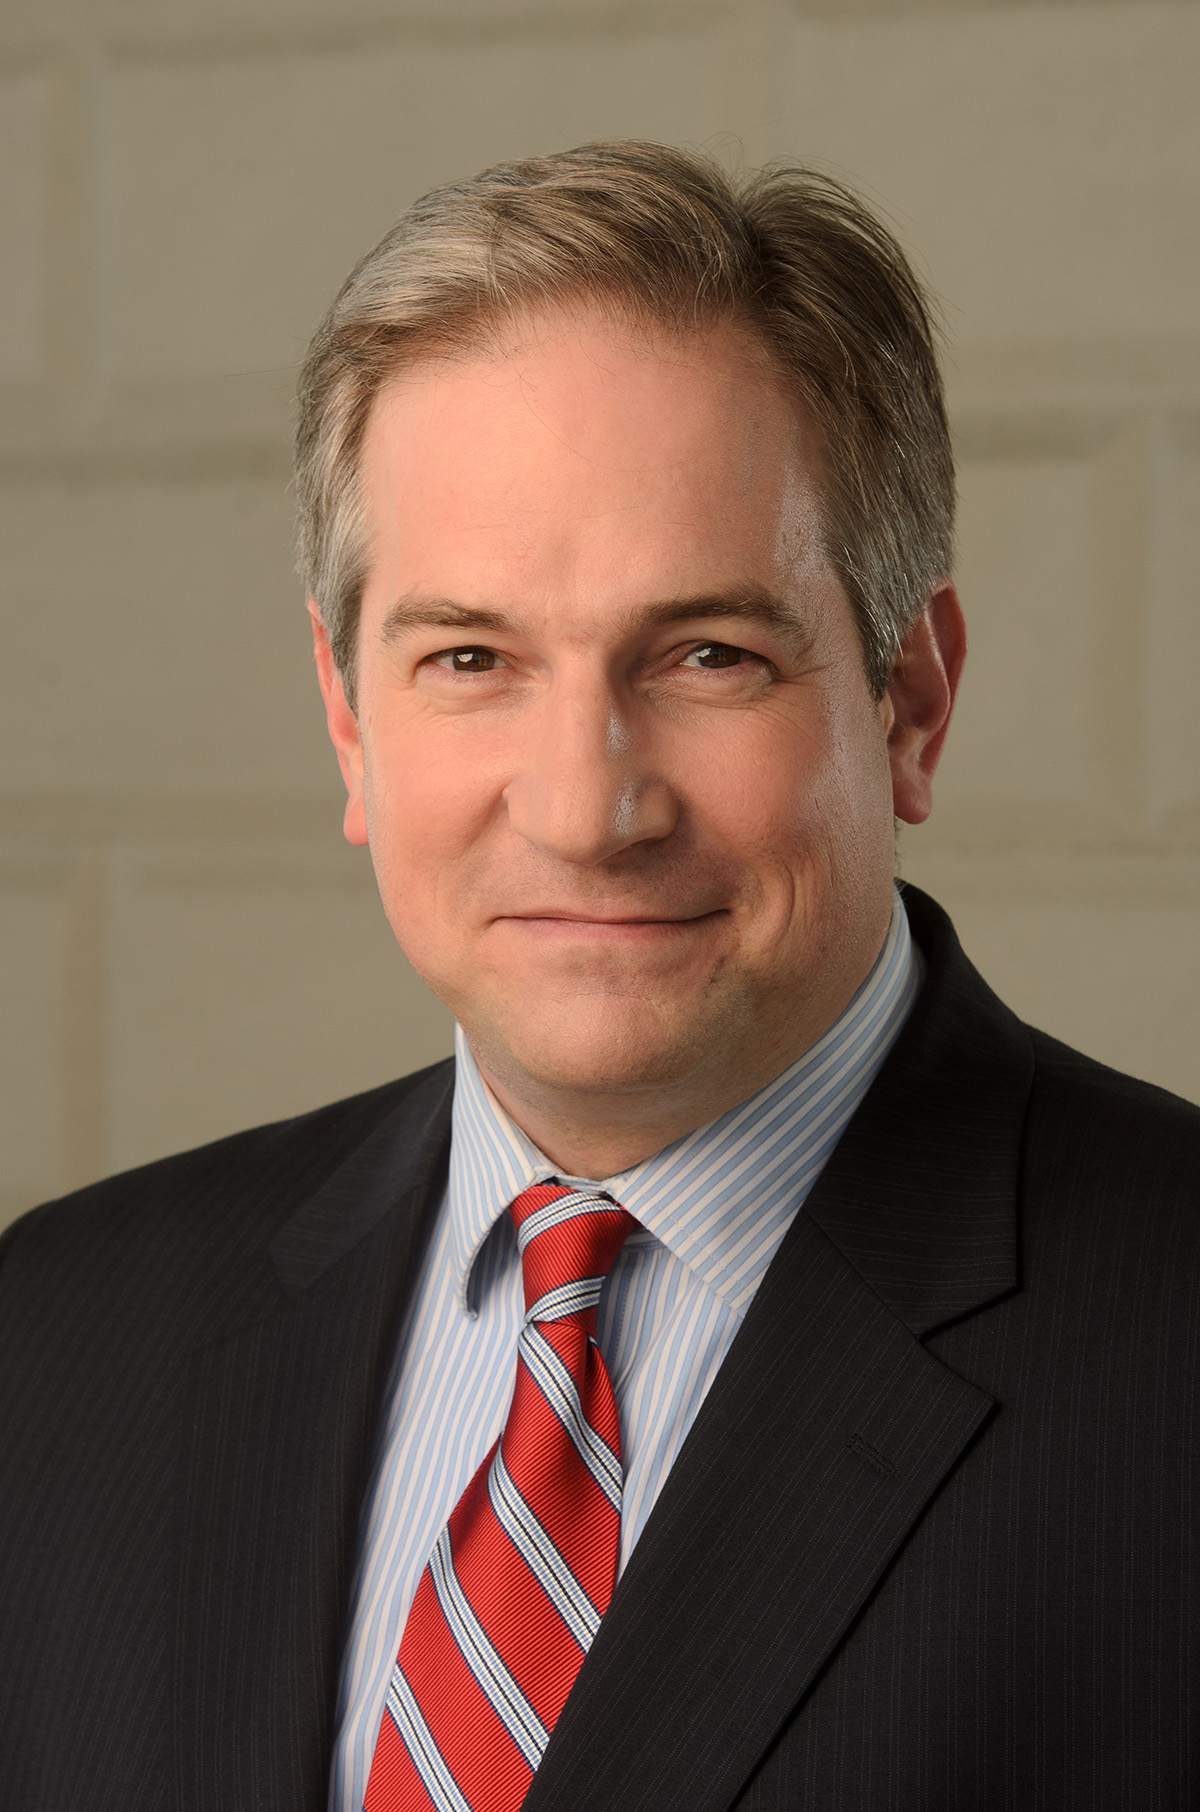 A Special Lecture by Douglas Bradburn, Ph.D., President and CEO of George Washington's Mount Vernon